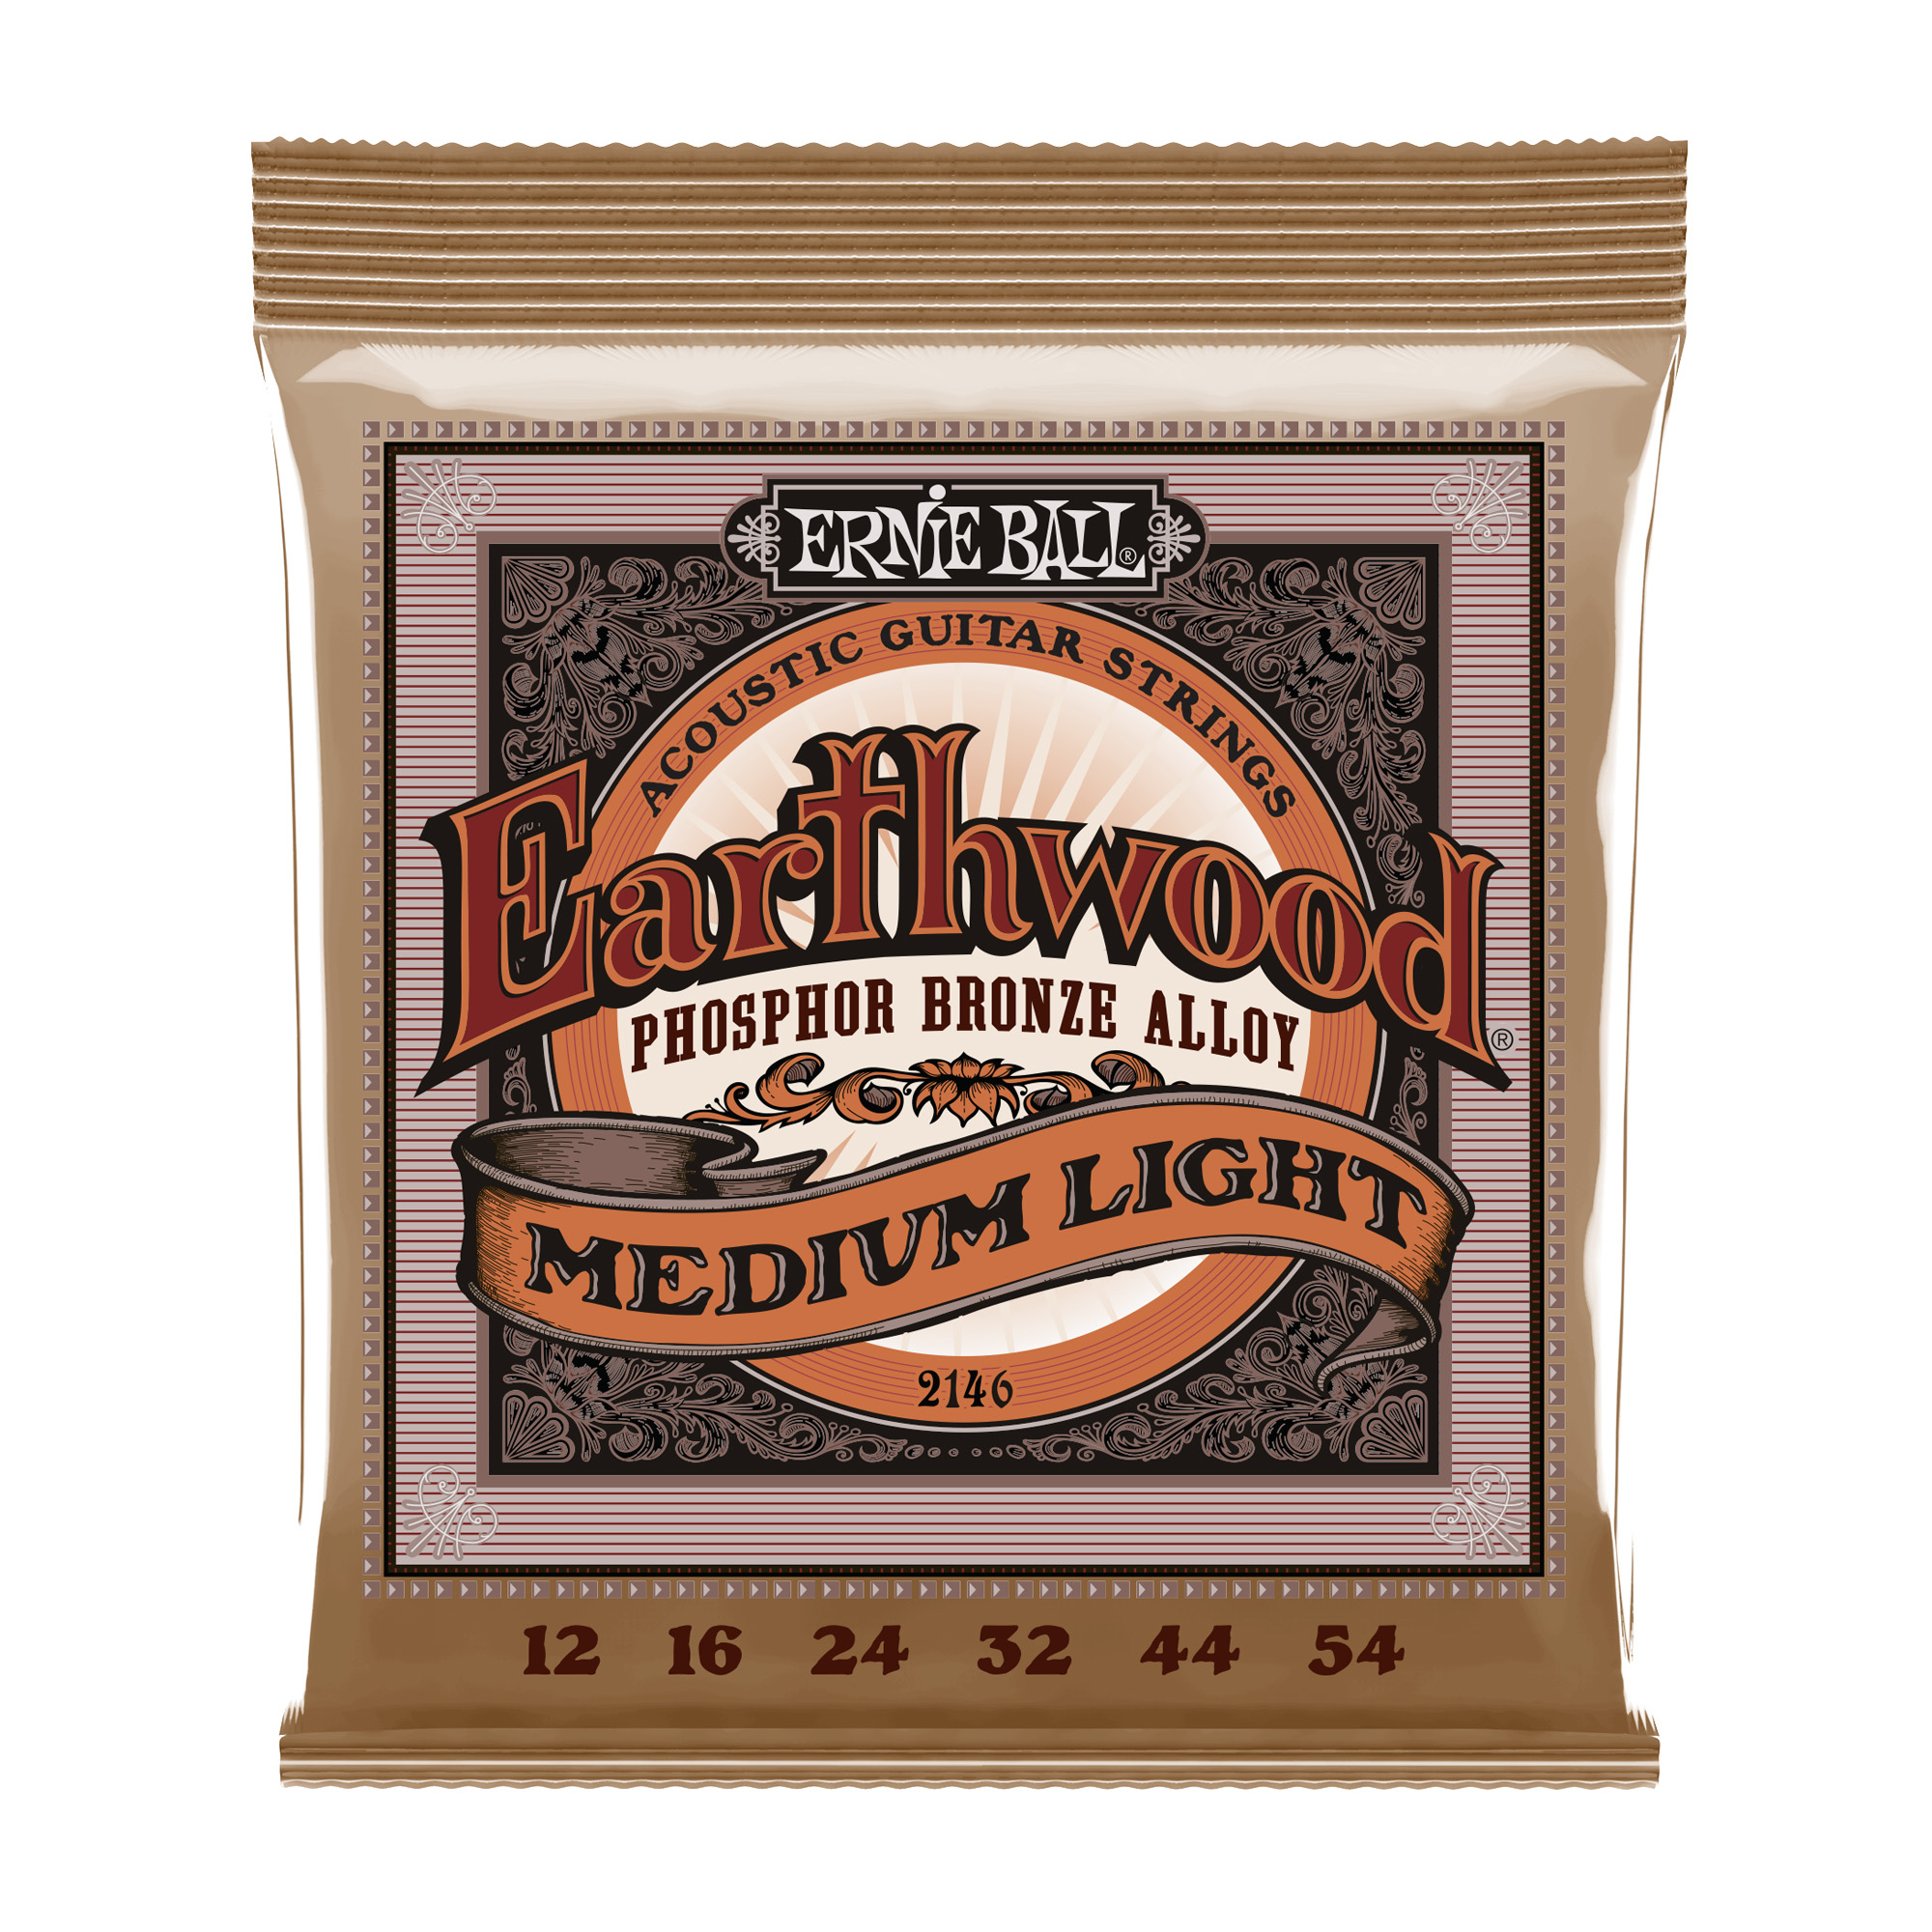 EARTHWOOD PHOSPHOR BRONZE MEDIUM LIGHT PHOSPHOR BRONZE